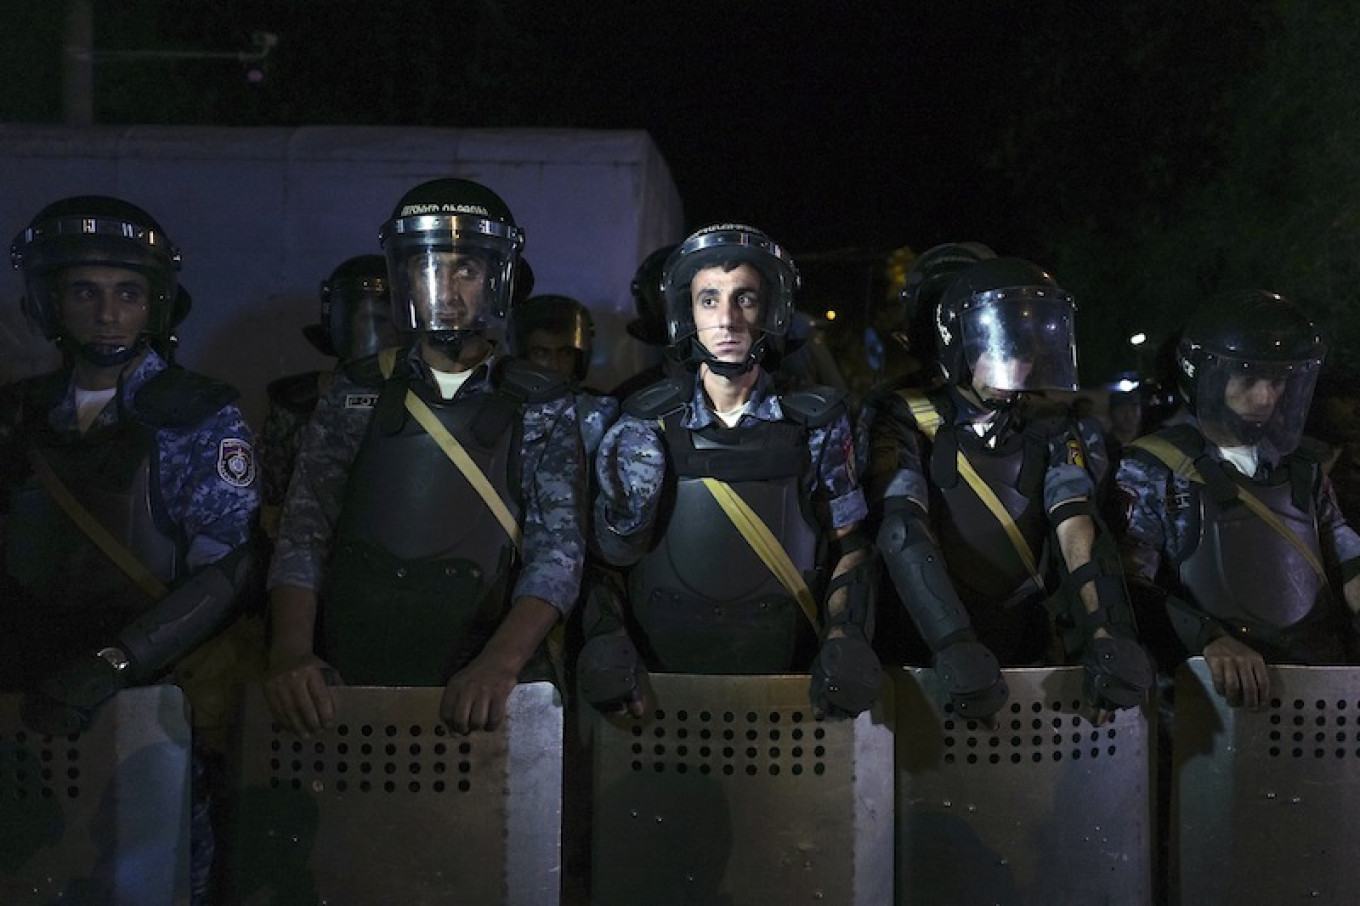 The police enjoyed little public support. Not even the news that two of their number had been killed was enough to move people to their side. Vahan Stepanyan / AP